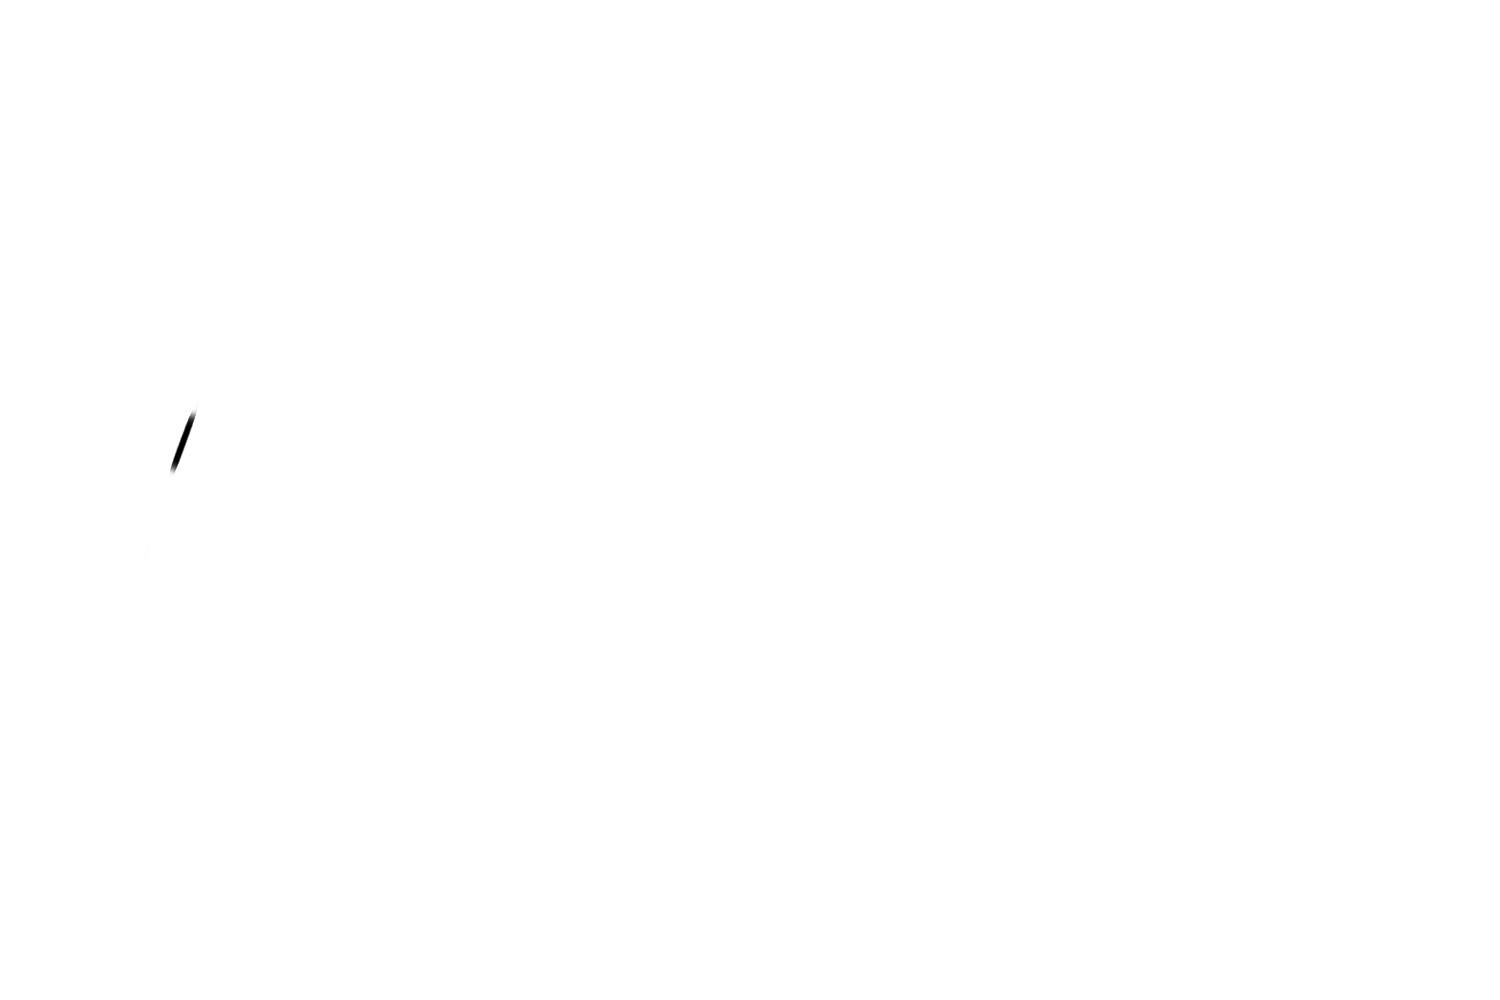 SPEARS ENTERTAINMENT